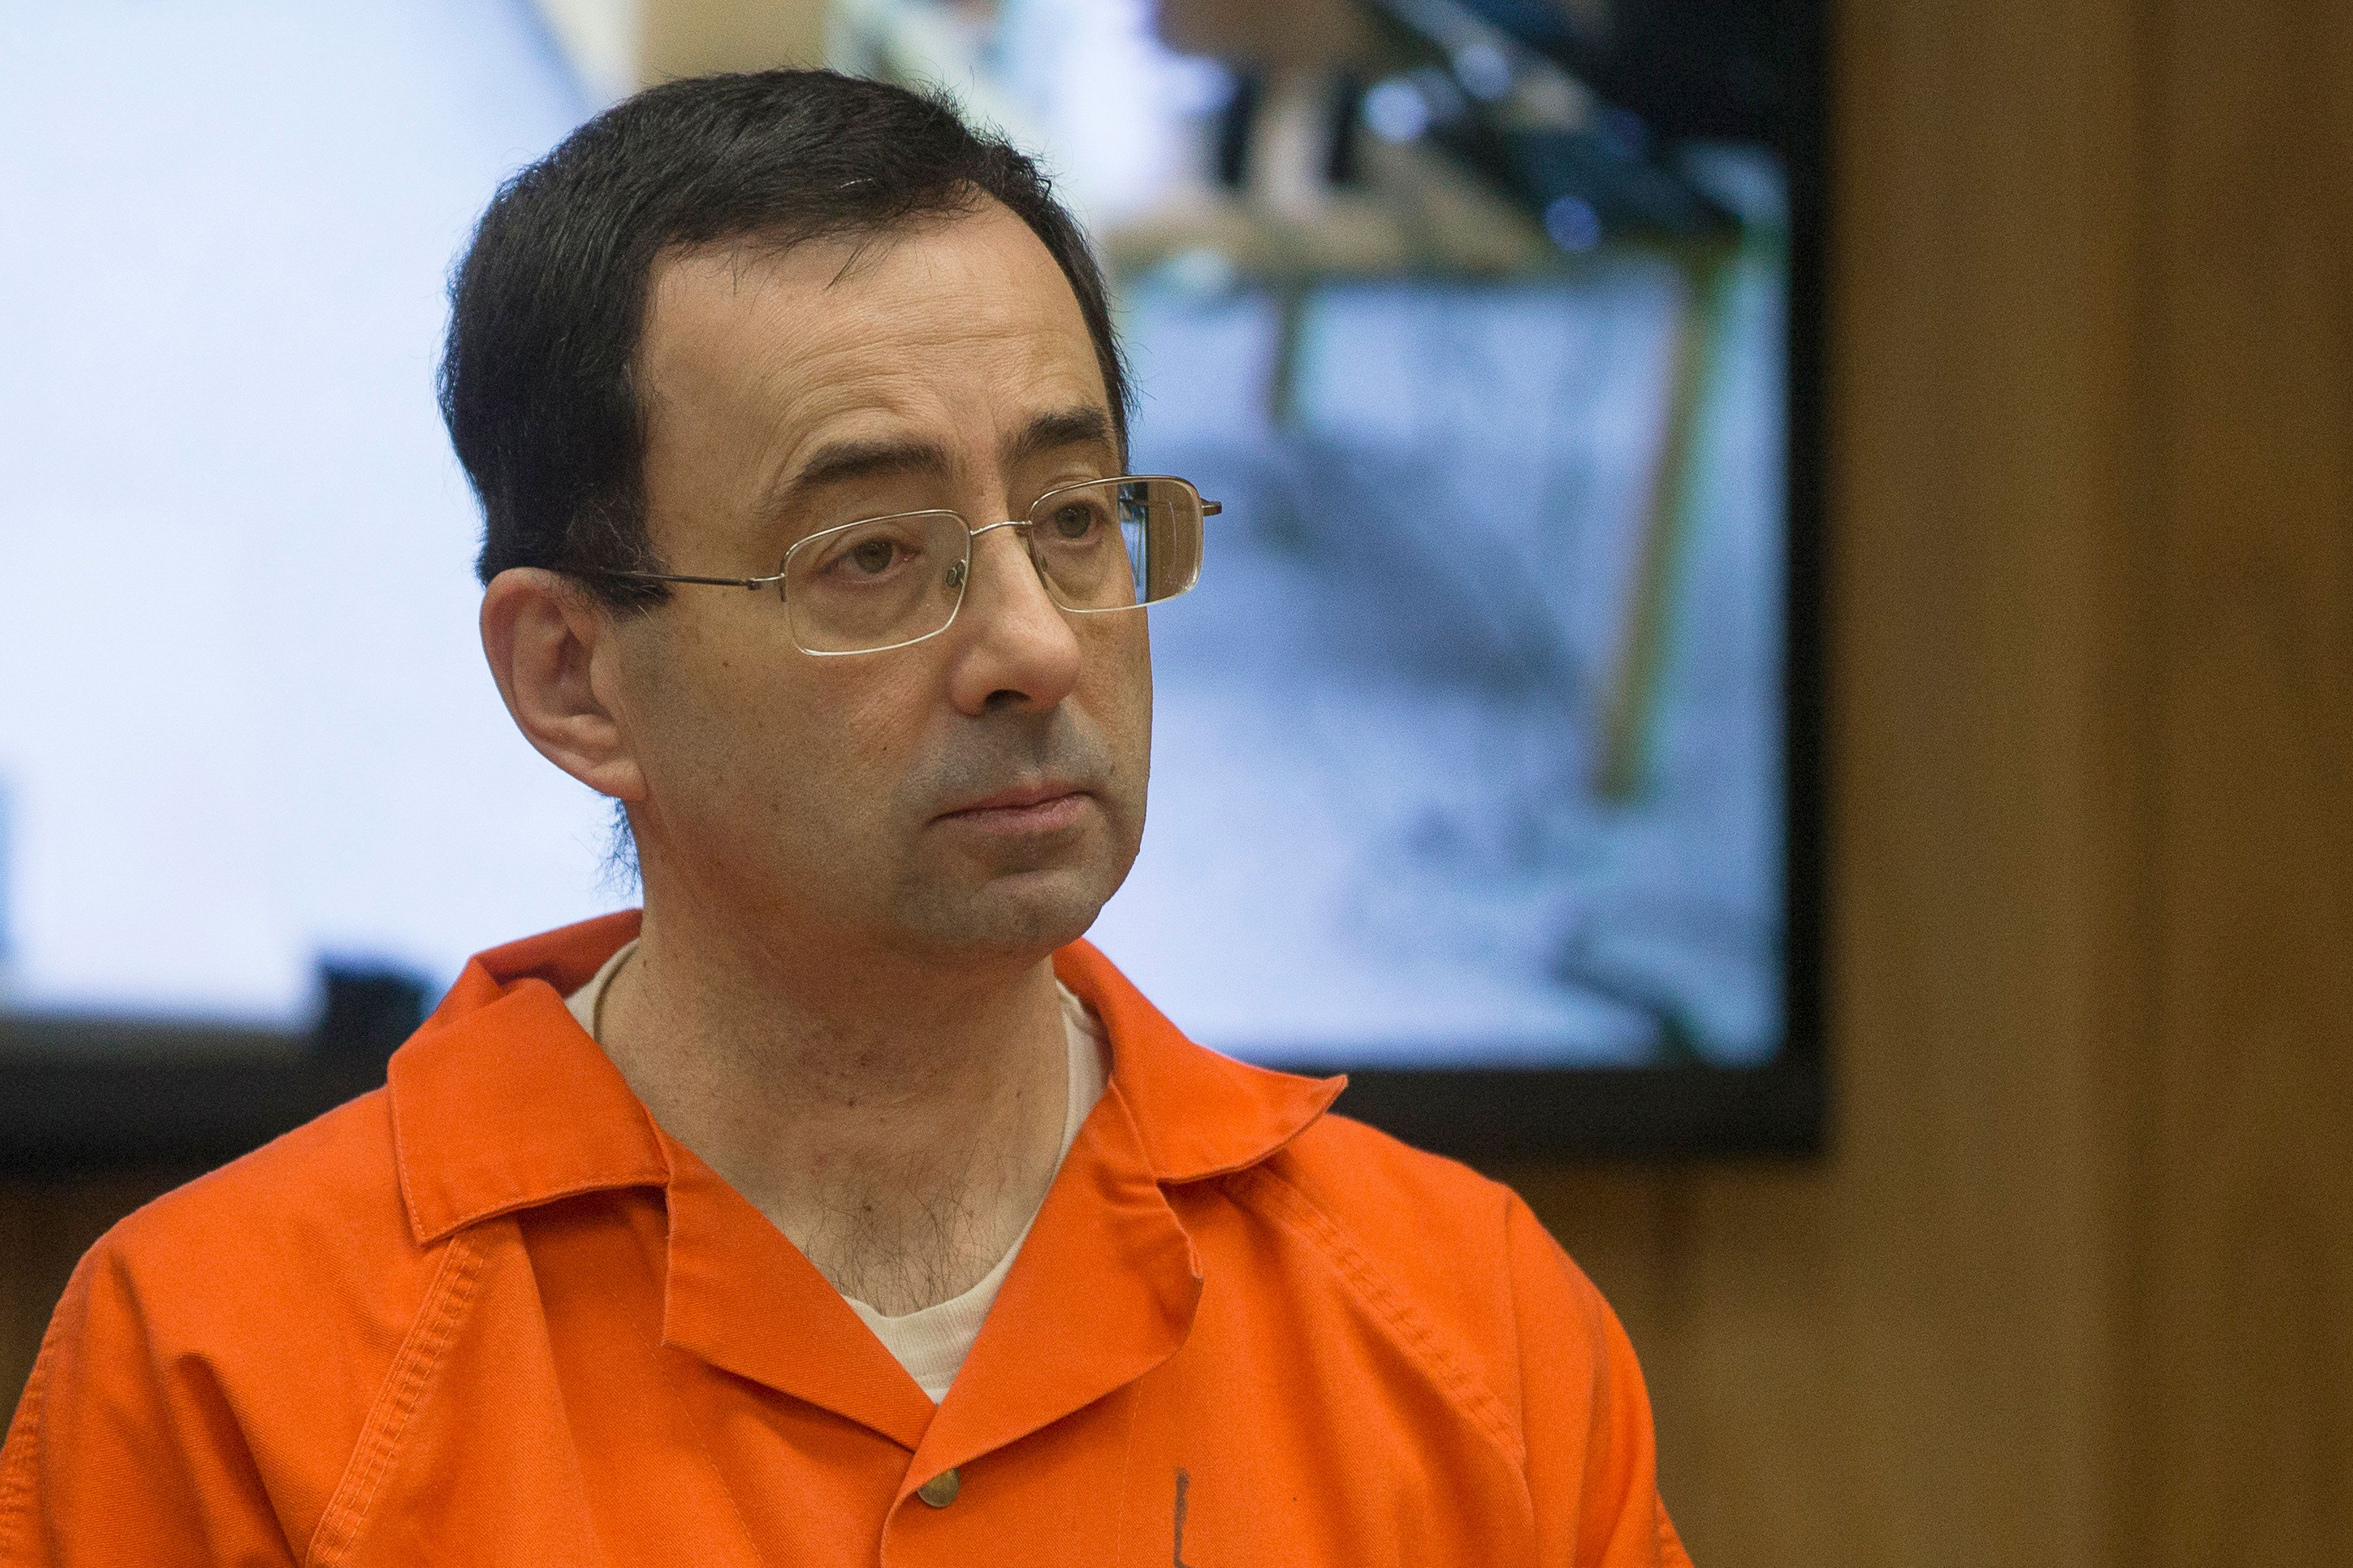 Former Michigan State University and USA Gymnastics doctor Larry Nassar appears in court for his final sentencing phase in Eaton County Circuit Court on February 5, 2018 in Charlotte, Michigan. / AFP PHOTO / RENA LAVERTY        (Photo credit should read RENA LAVERTY/AFP/Getty Images)